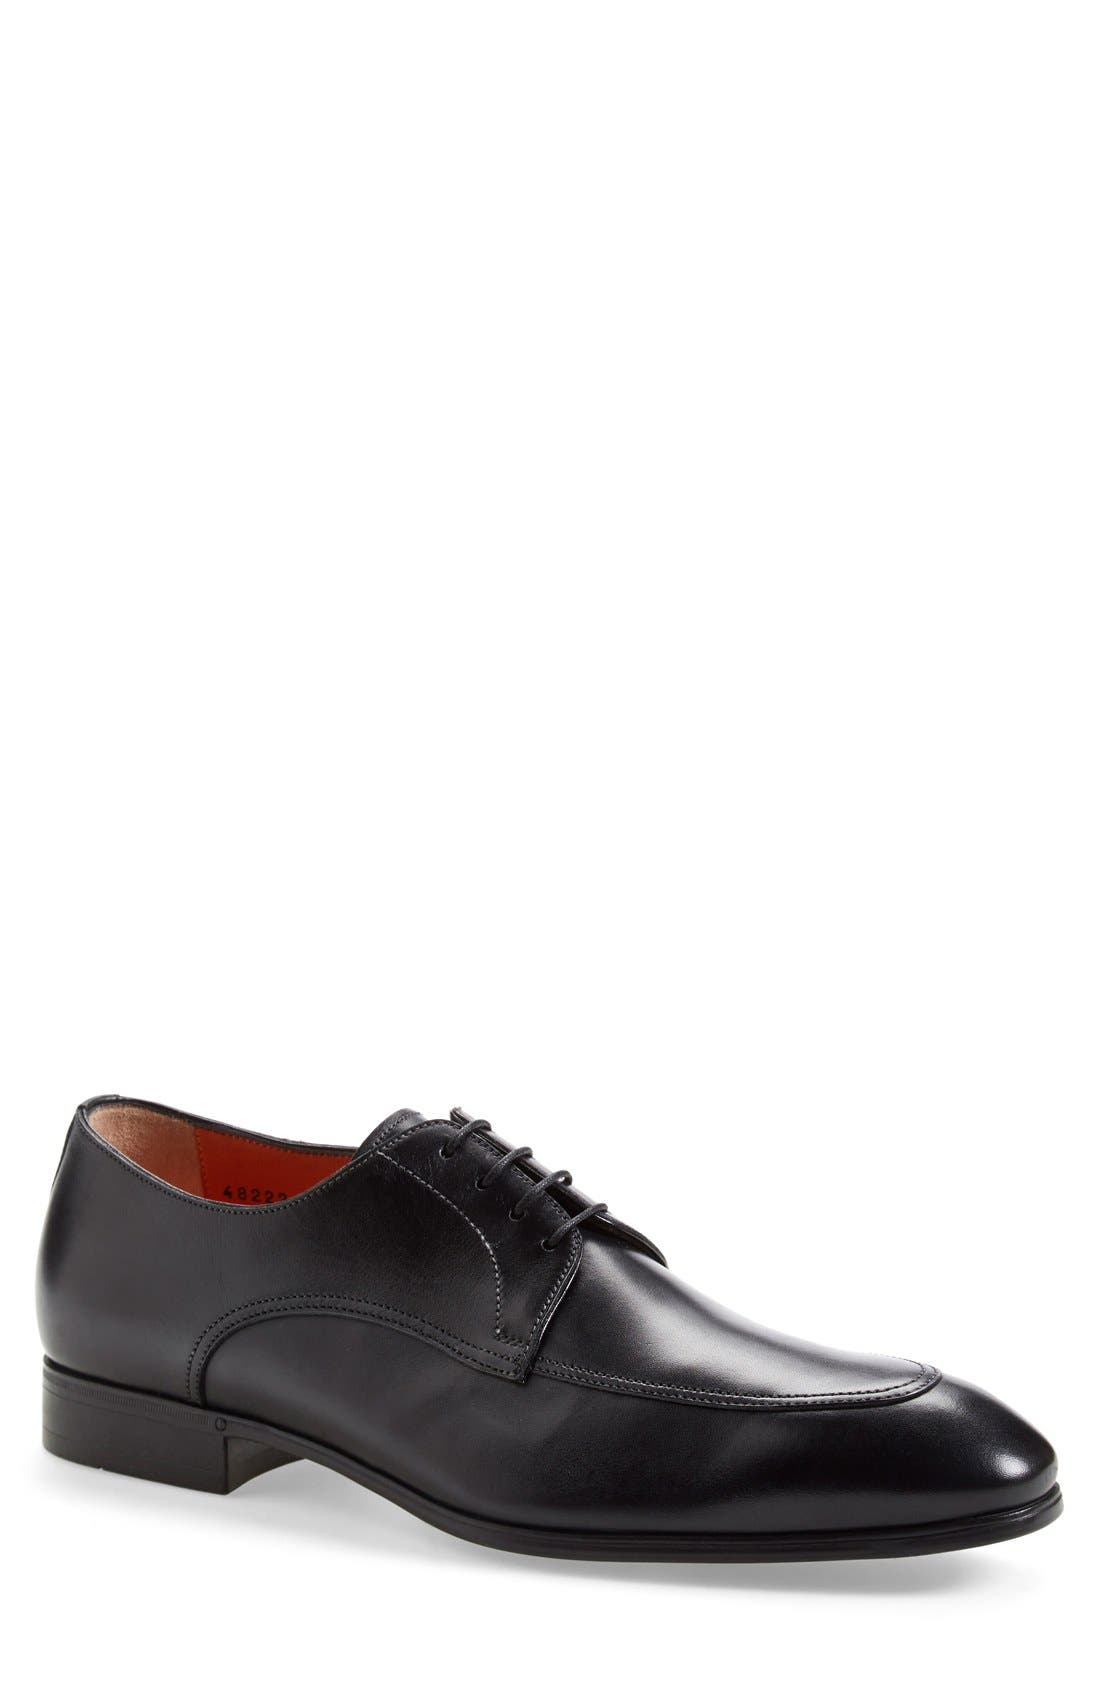 Main Image - Santoni 'Atwood' Apron Toe Derby (Men)